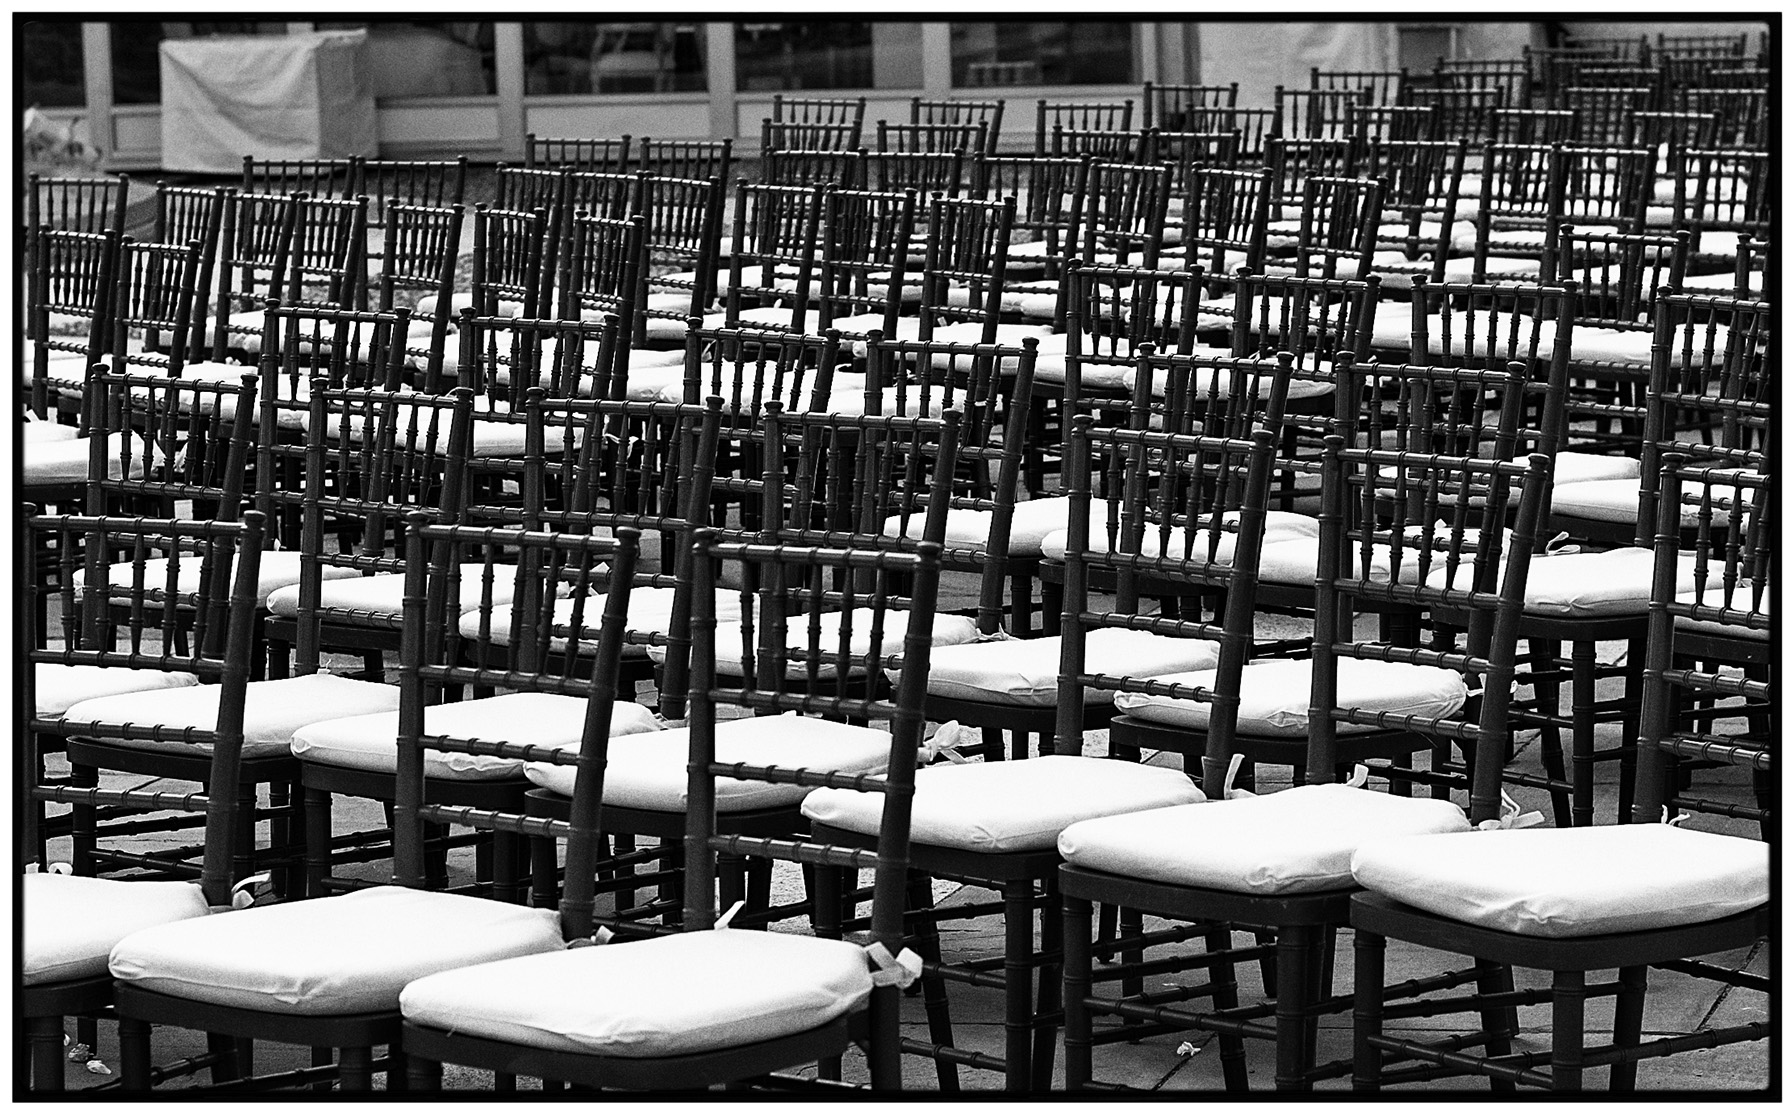 Chairs by julianf73 in Regular Member Gallery